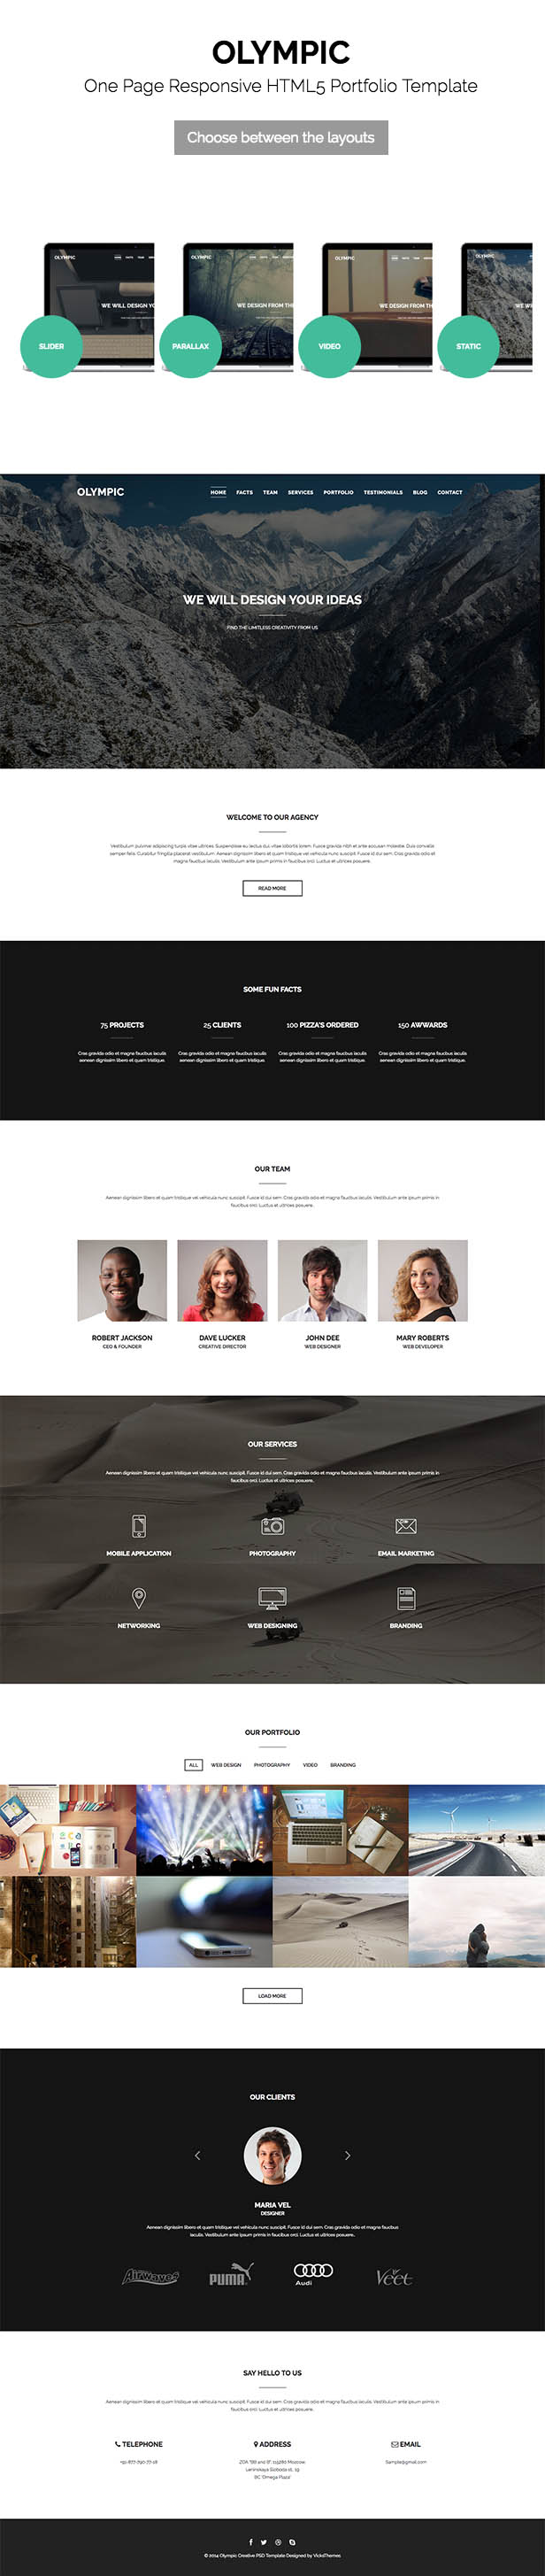 Olympic One Page Parallax Template - 9